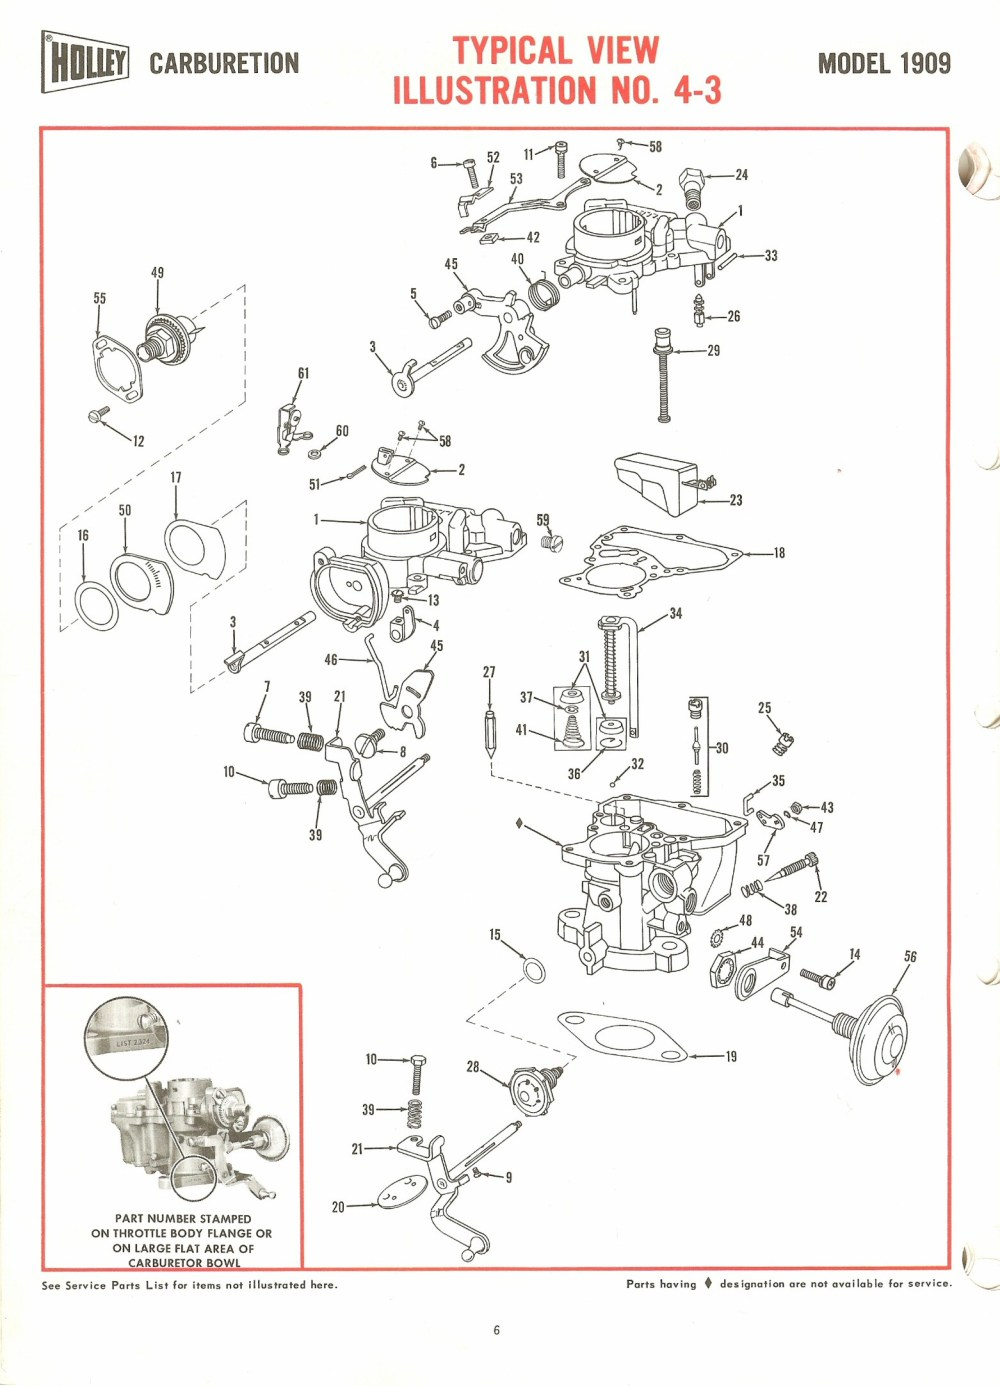 medium resolution of holley 1909 exploded diagrams the old car manual project holley carb diagram